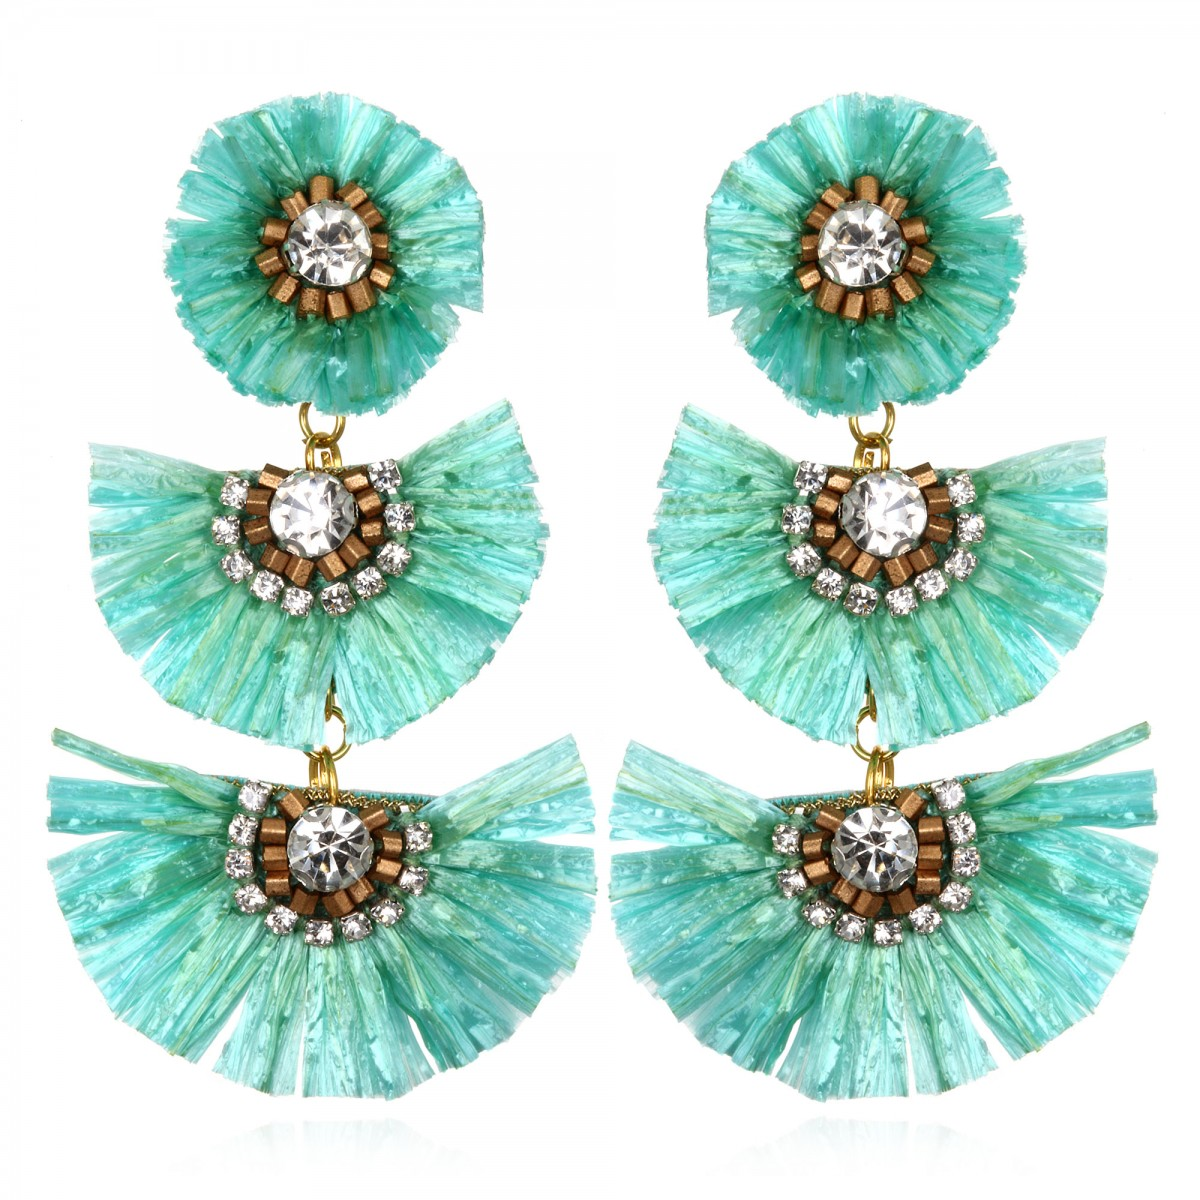 Tuquoise Rafia Fan  Earrings by SUZANNA DAI